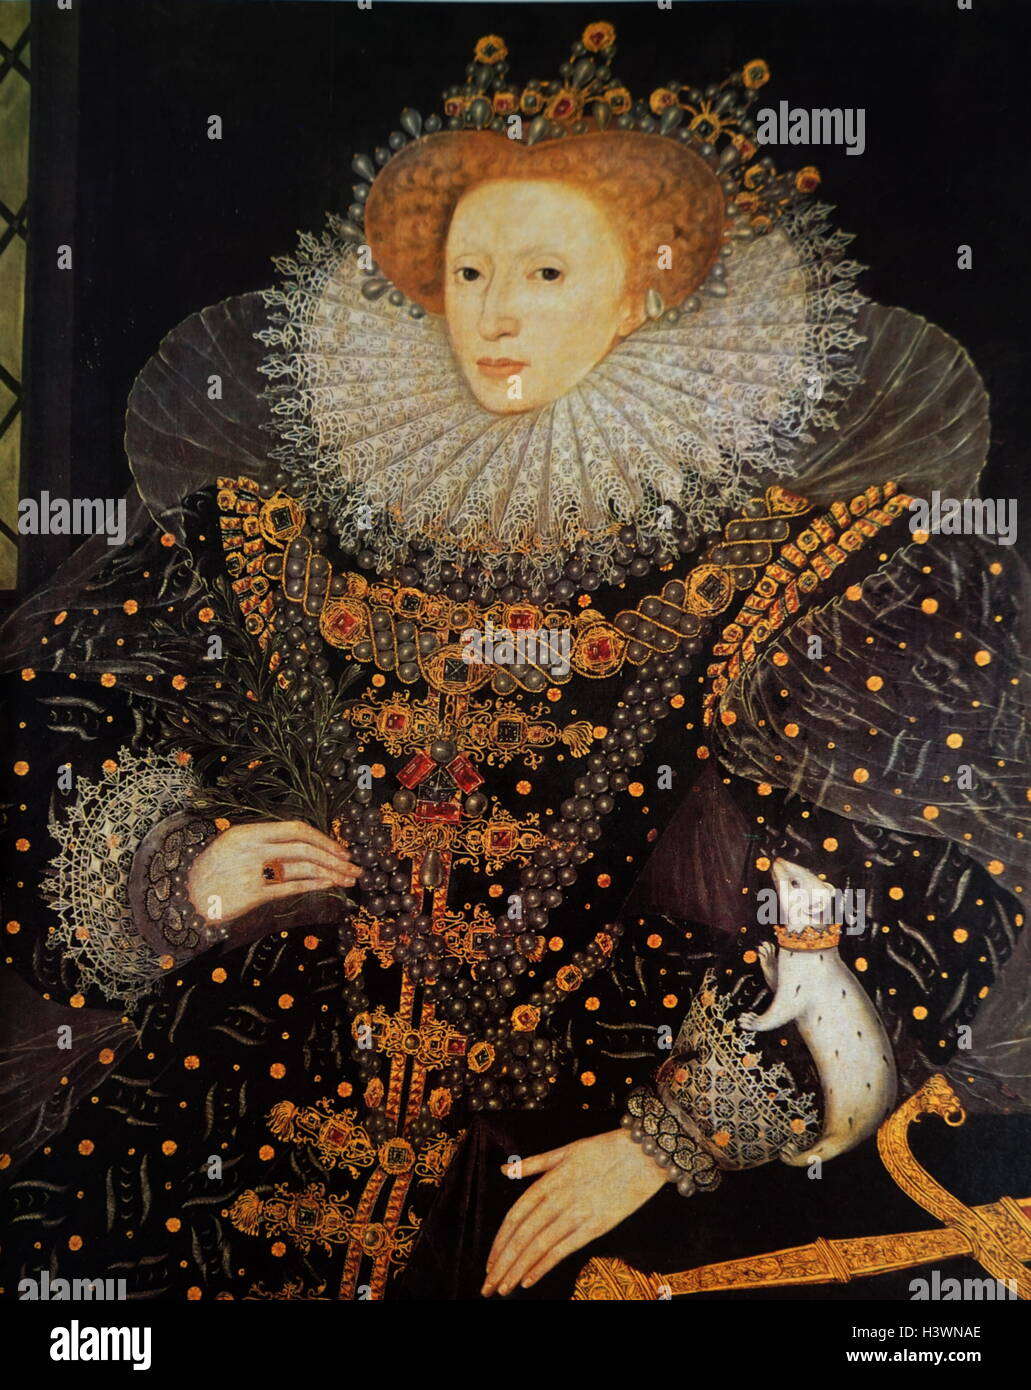 Portrait of Queen Elizabeth I of England (1533-1603) Queen of England.  Dated 16th Century